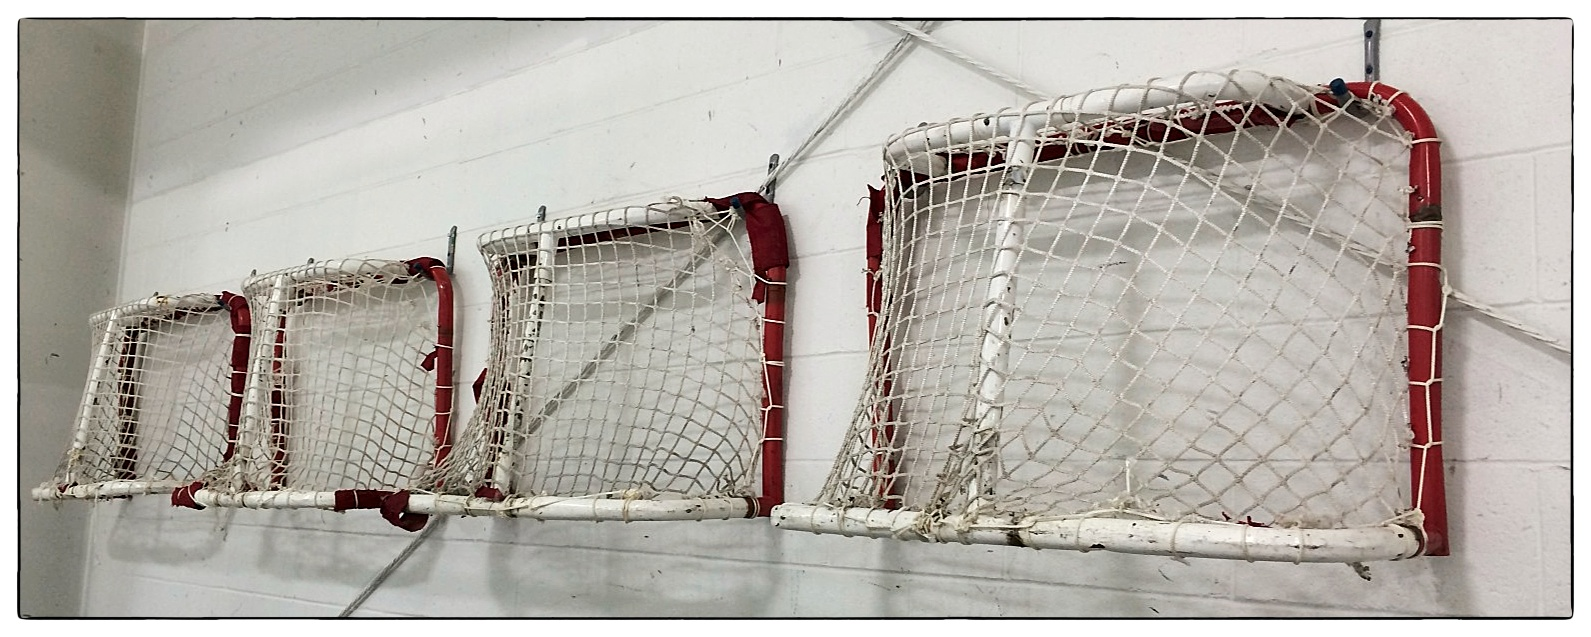 Hockey nets adorning the wall at Norwich Ice Rink, Norwich, Conn., shot on November 13, 2013.